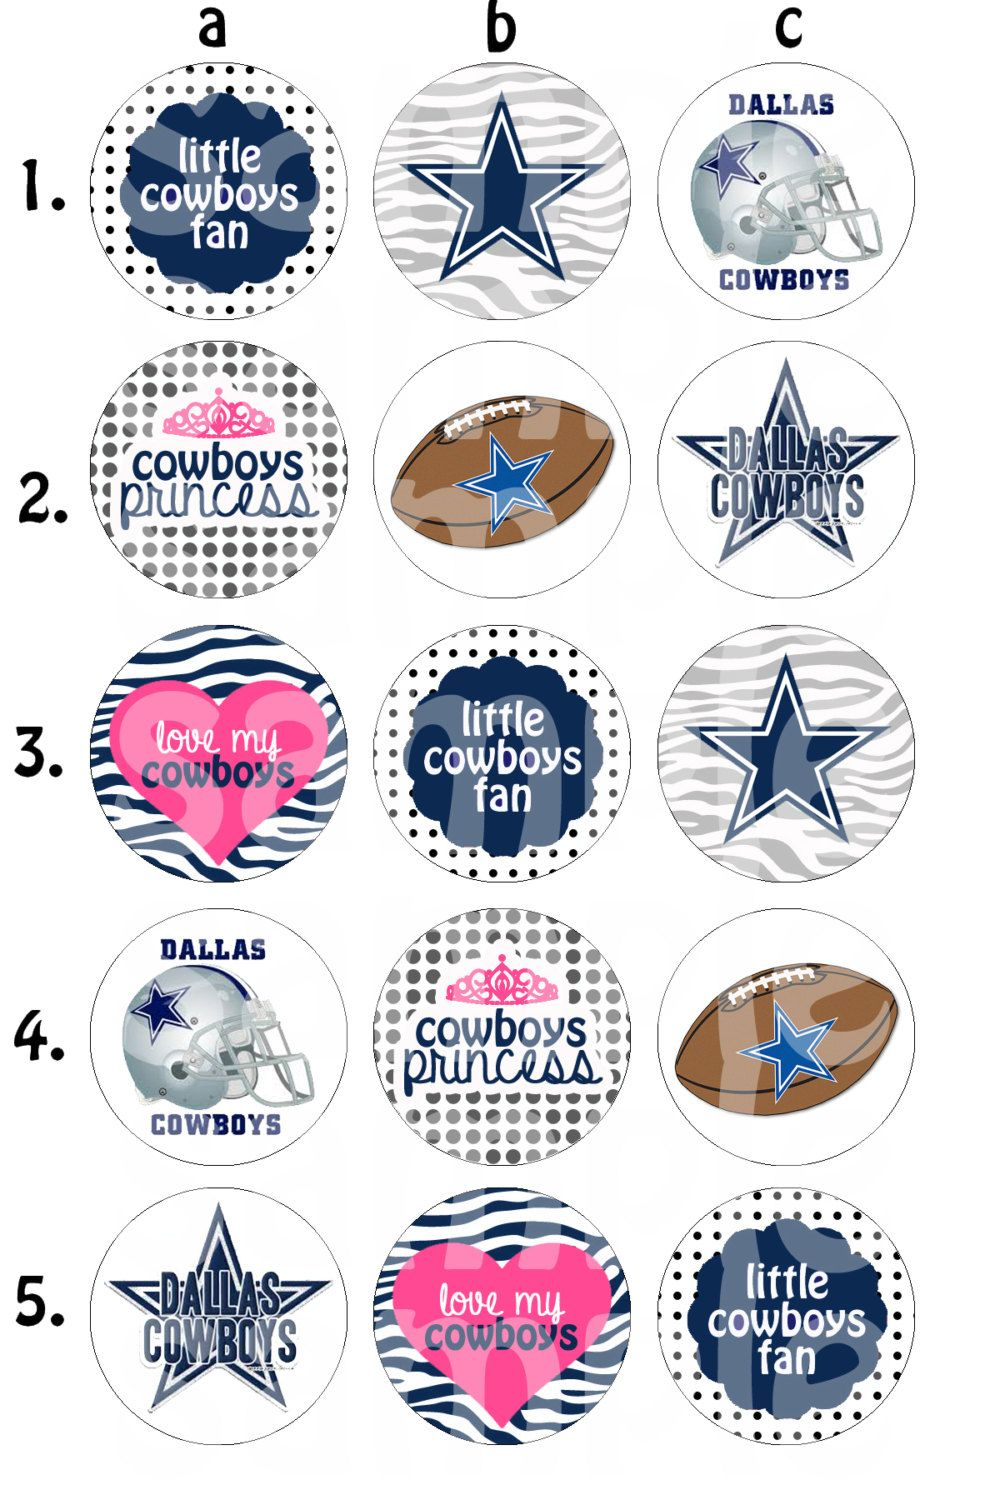 Dallas cowboys bottle cap images by hellolovelycreations for Dallas cowboys arts and crafts